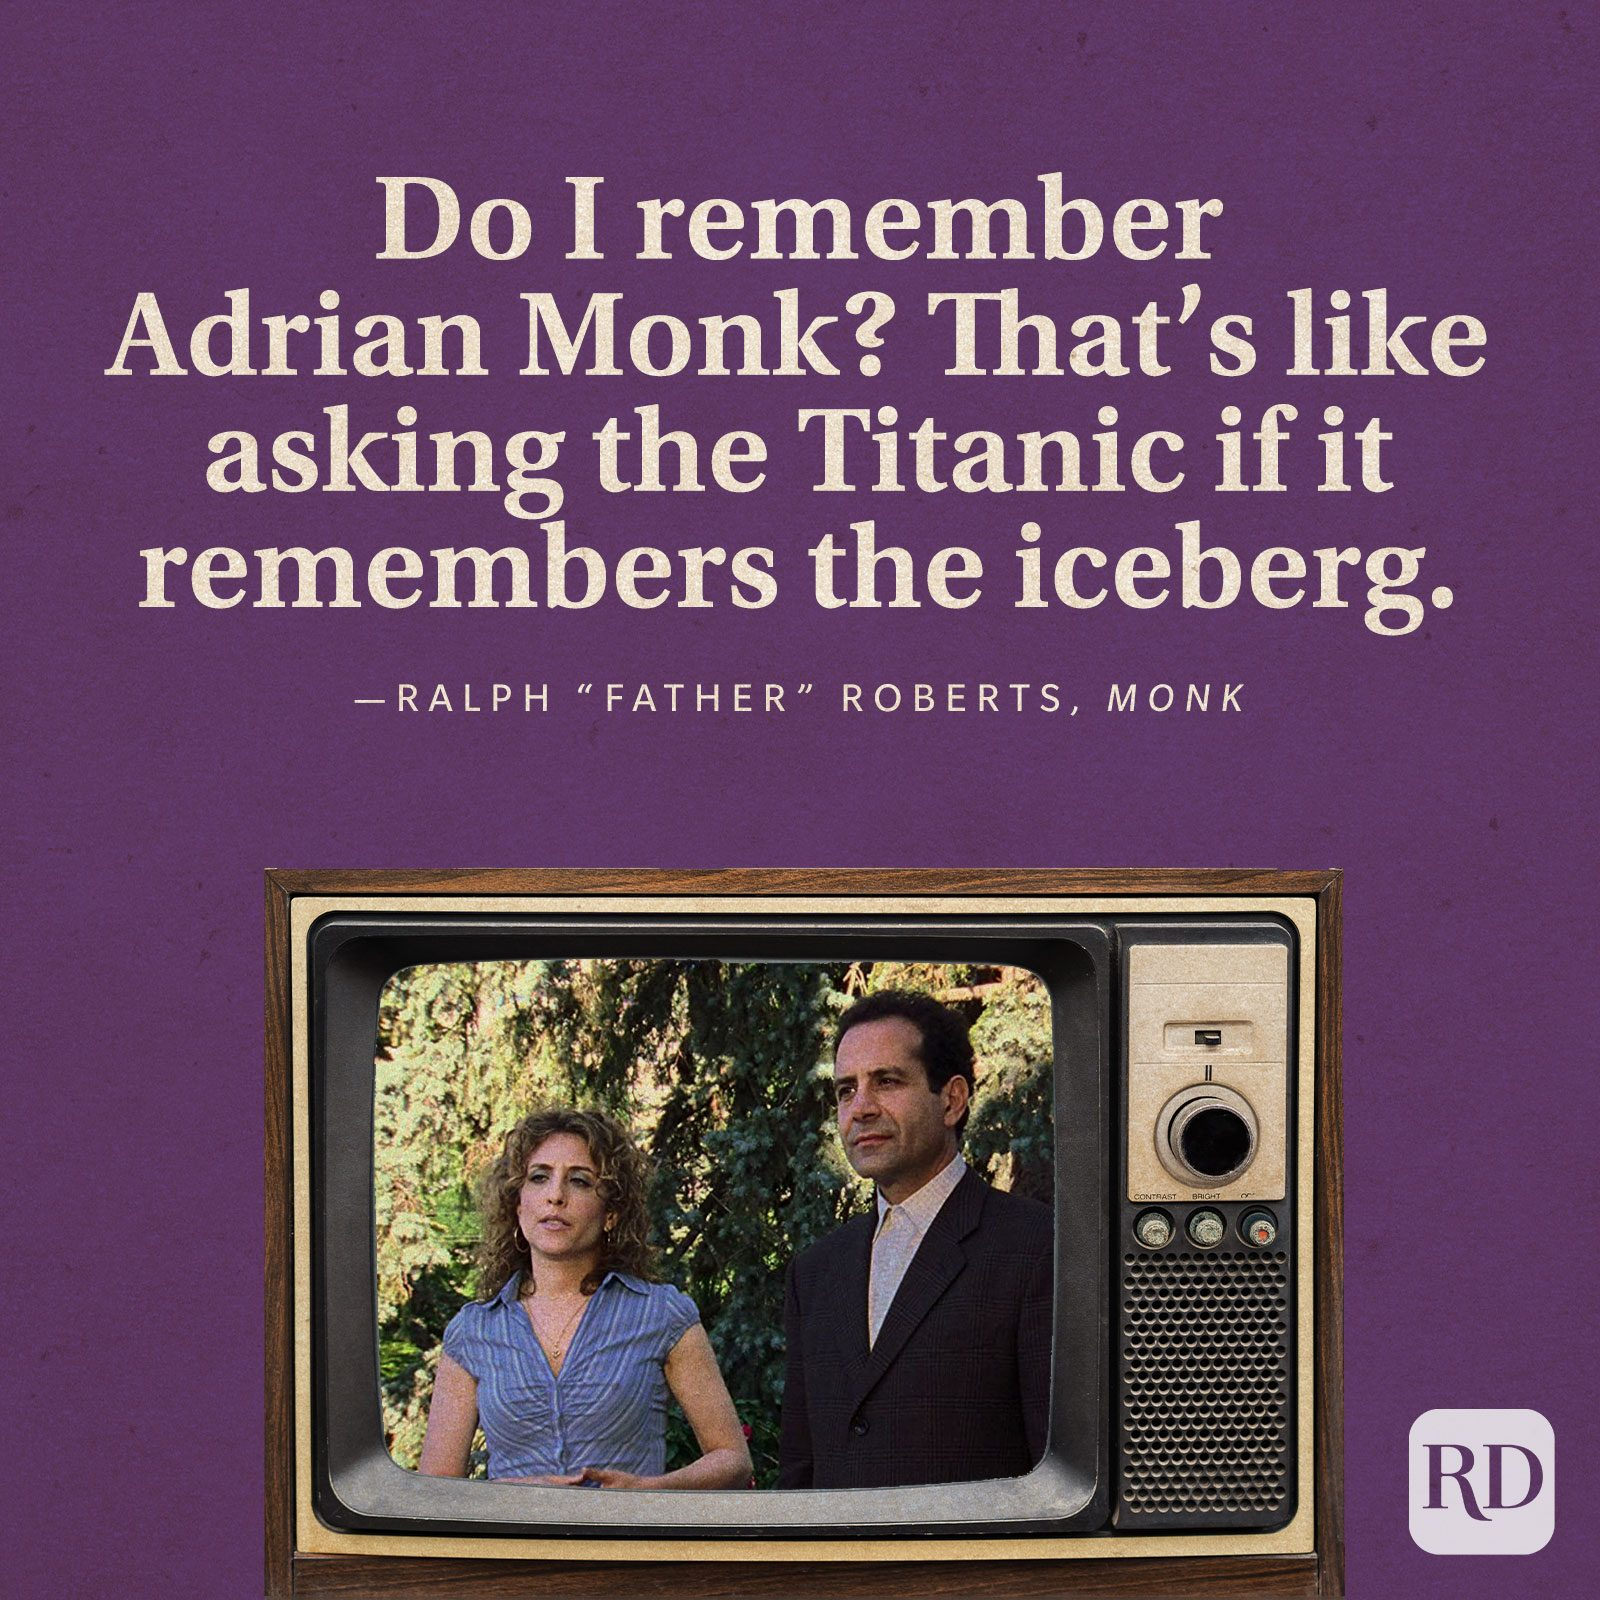 """""""Do I remember Adrian Monk? That's like asking the Titanic if it remembers the iceberg."""" -Ralph """"Father"""" Roberts in Monk."""